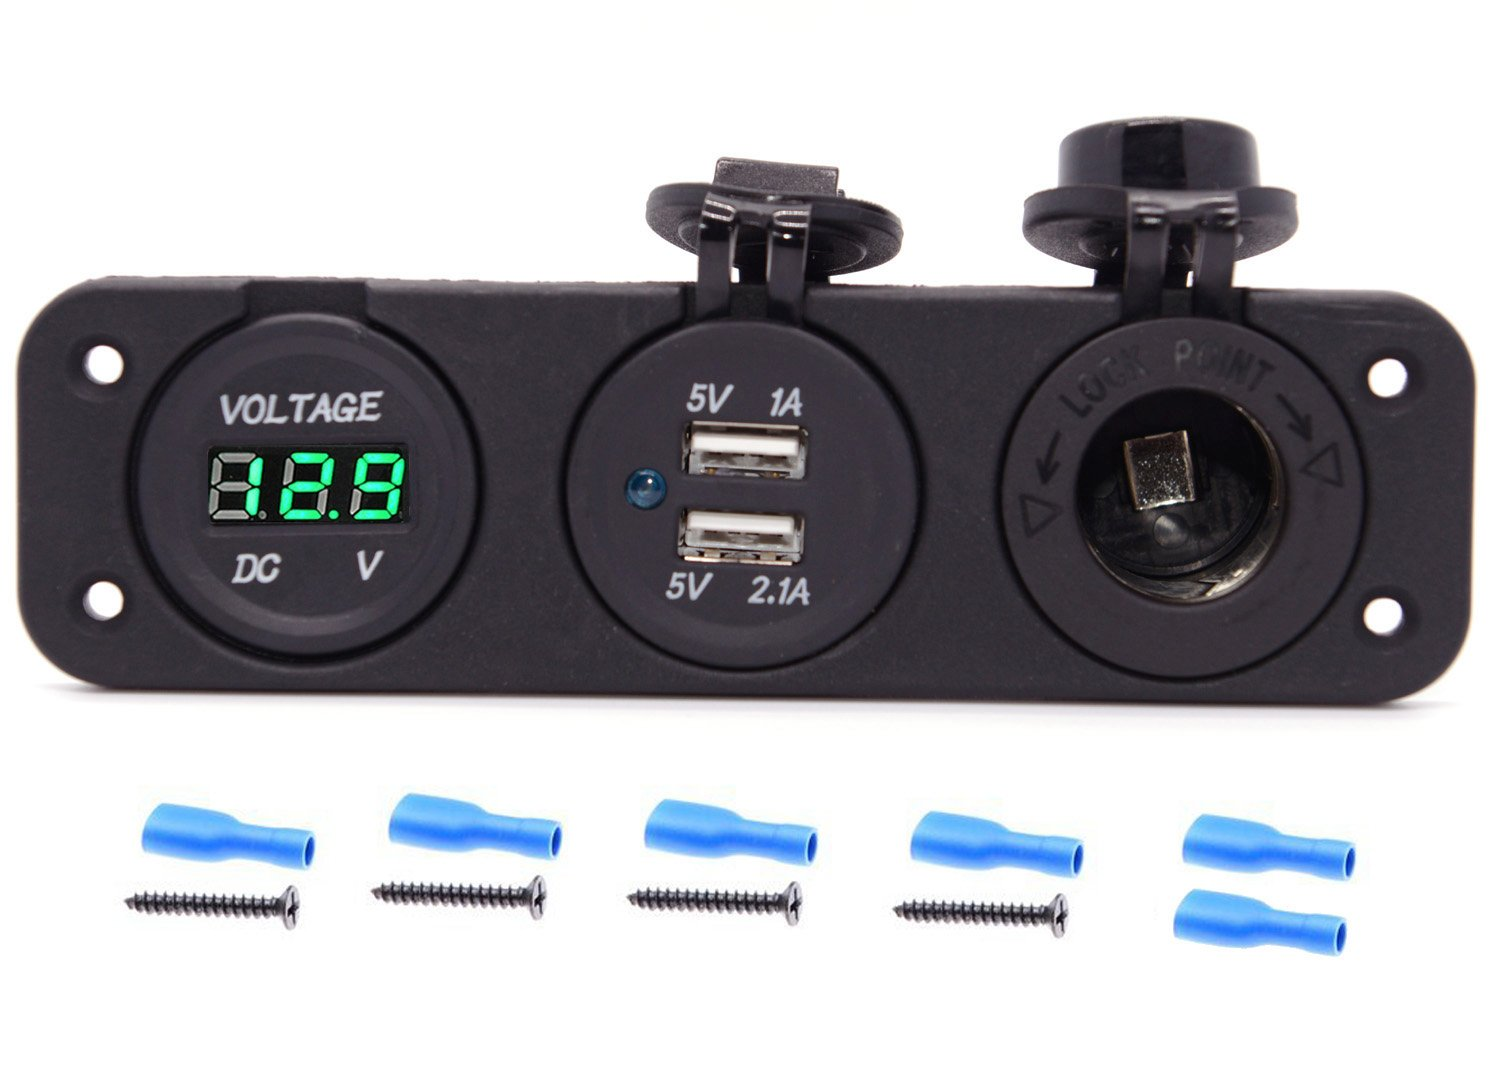 12 volt charger and voltmeter all in one convenient package.